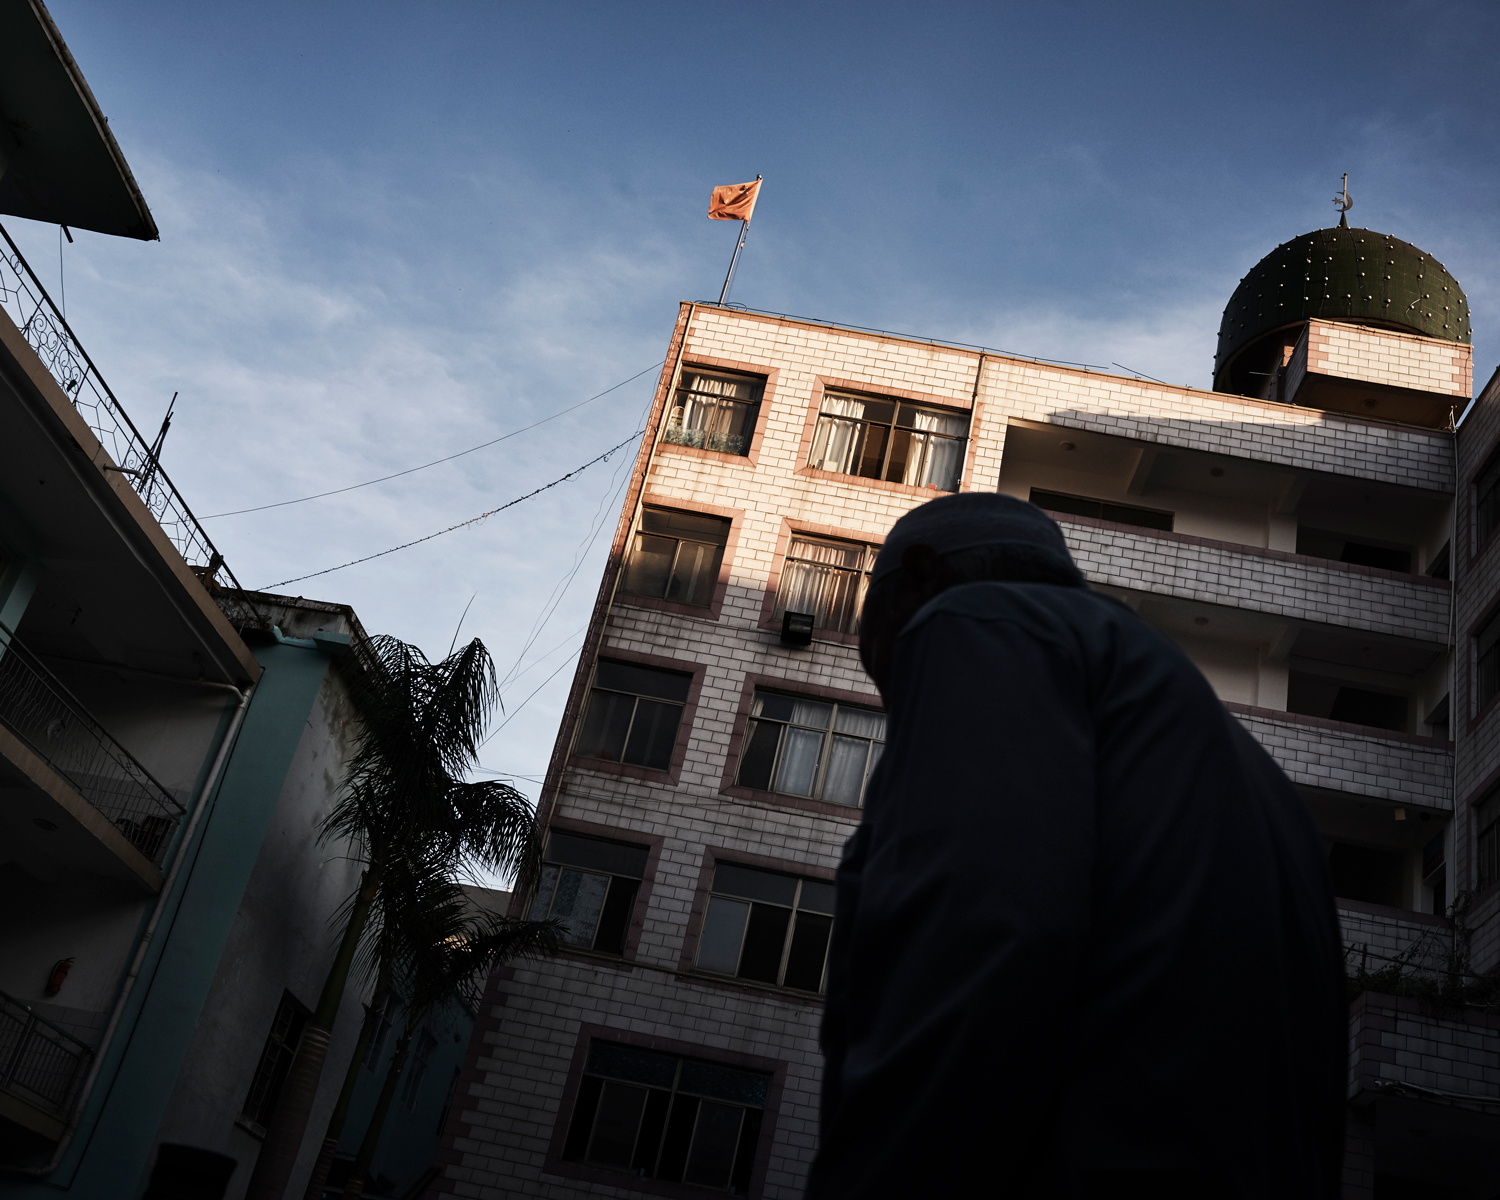 A People's Republic of China (P.R.C.) flag flies over Nanguan Mosque, in the city of Kaiyuan, China's southwestern Yunnan province, June 2016. Last year, state-sanctioned religious associations proposed that all religious venues in China should raise the P.R.C. flag.